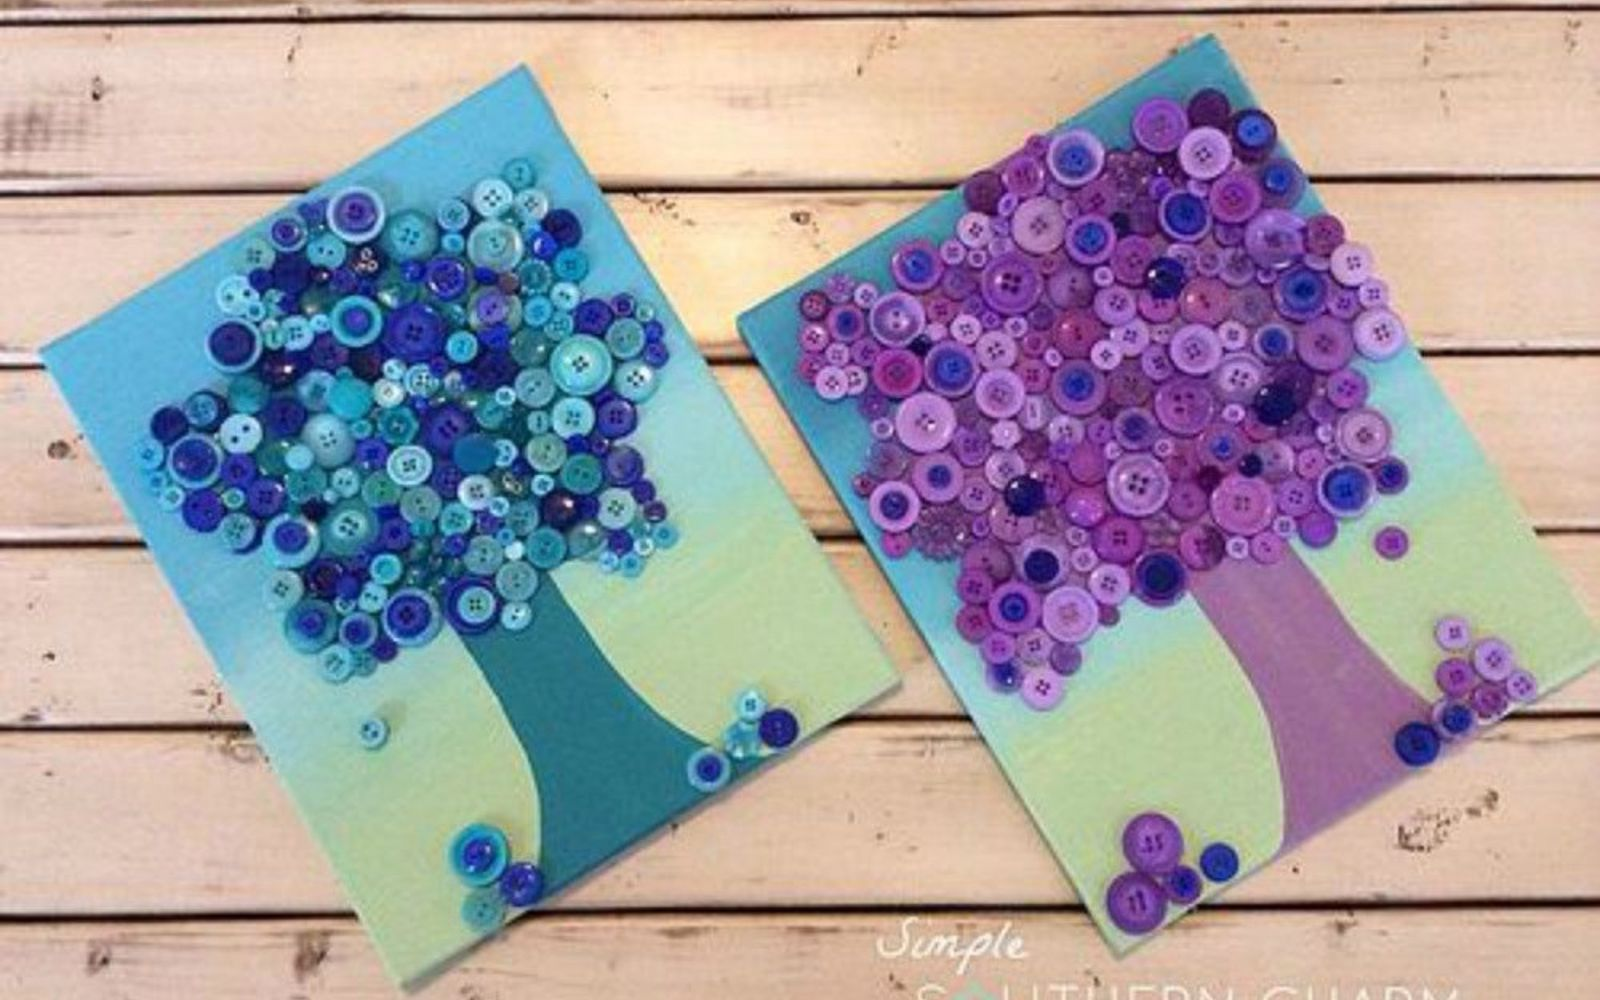 s 15 quick and easy gift ideas using buttons, Stick them on canvas to create pretty art